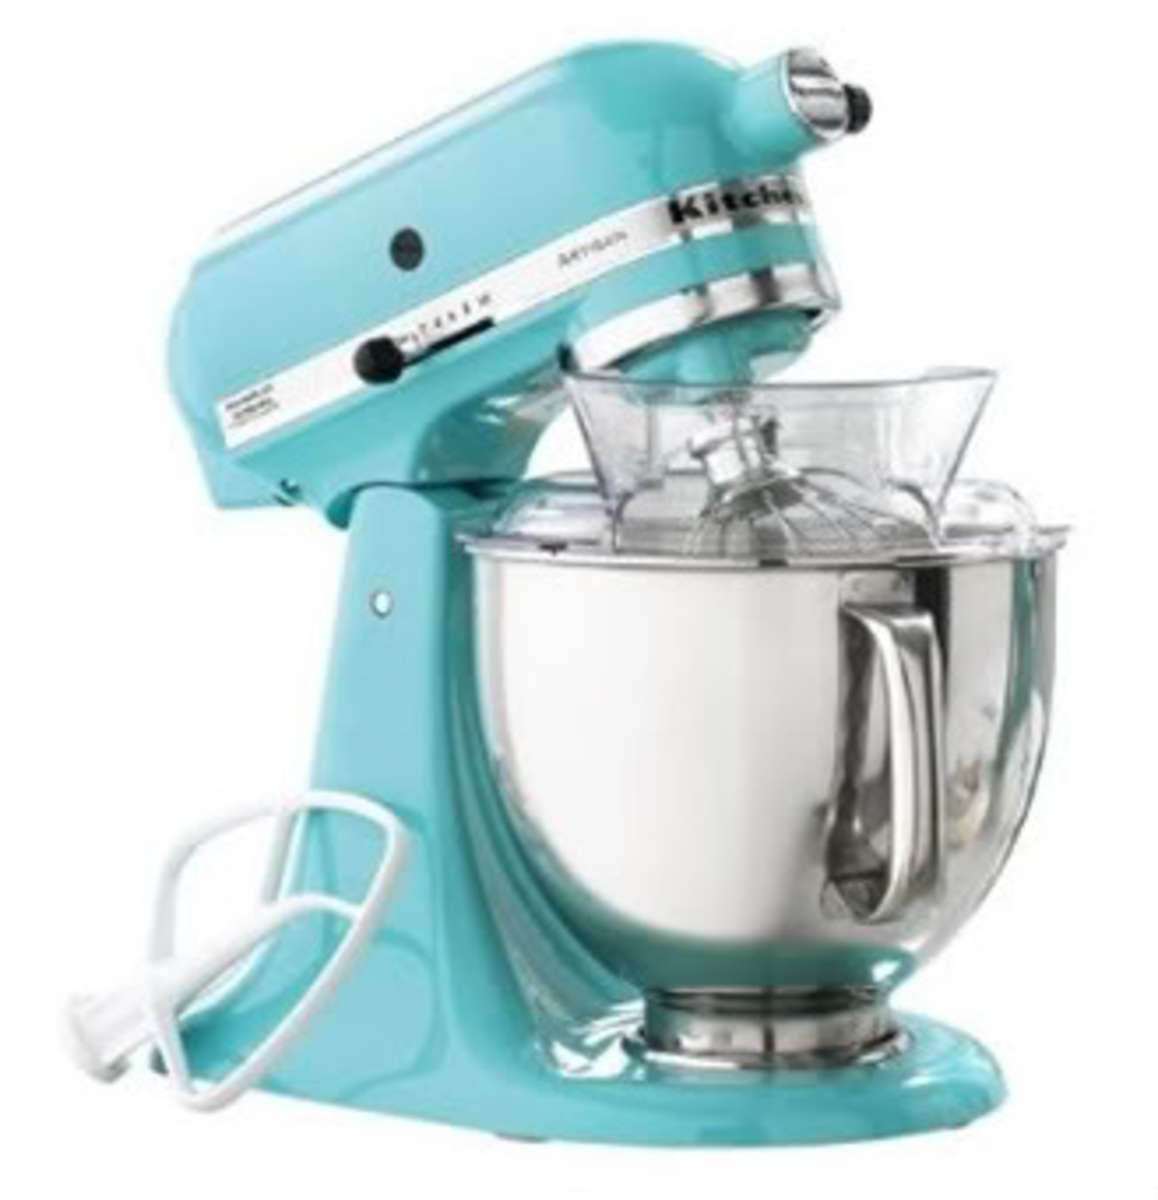 Kitchenaid Artisan Martha Stewart 5 Qt Stand Mixer, A Review